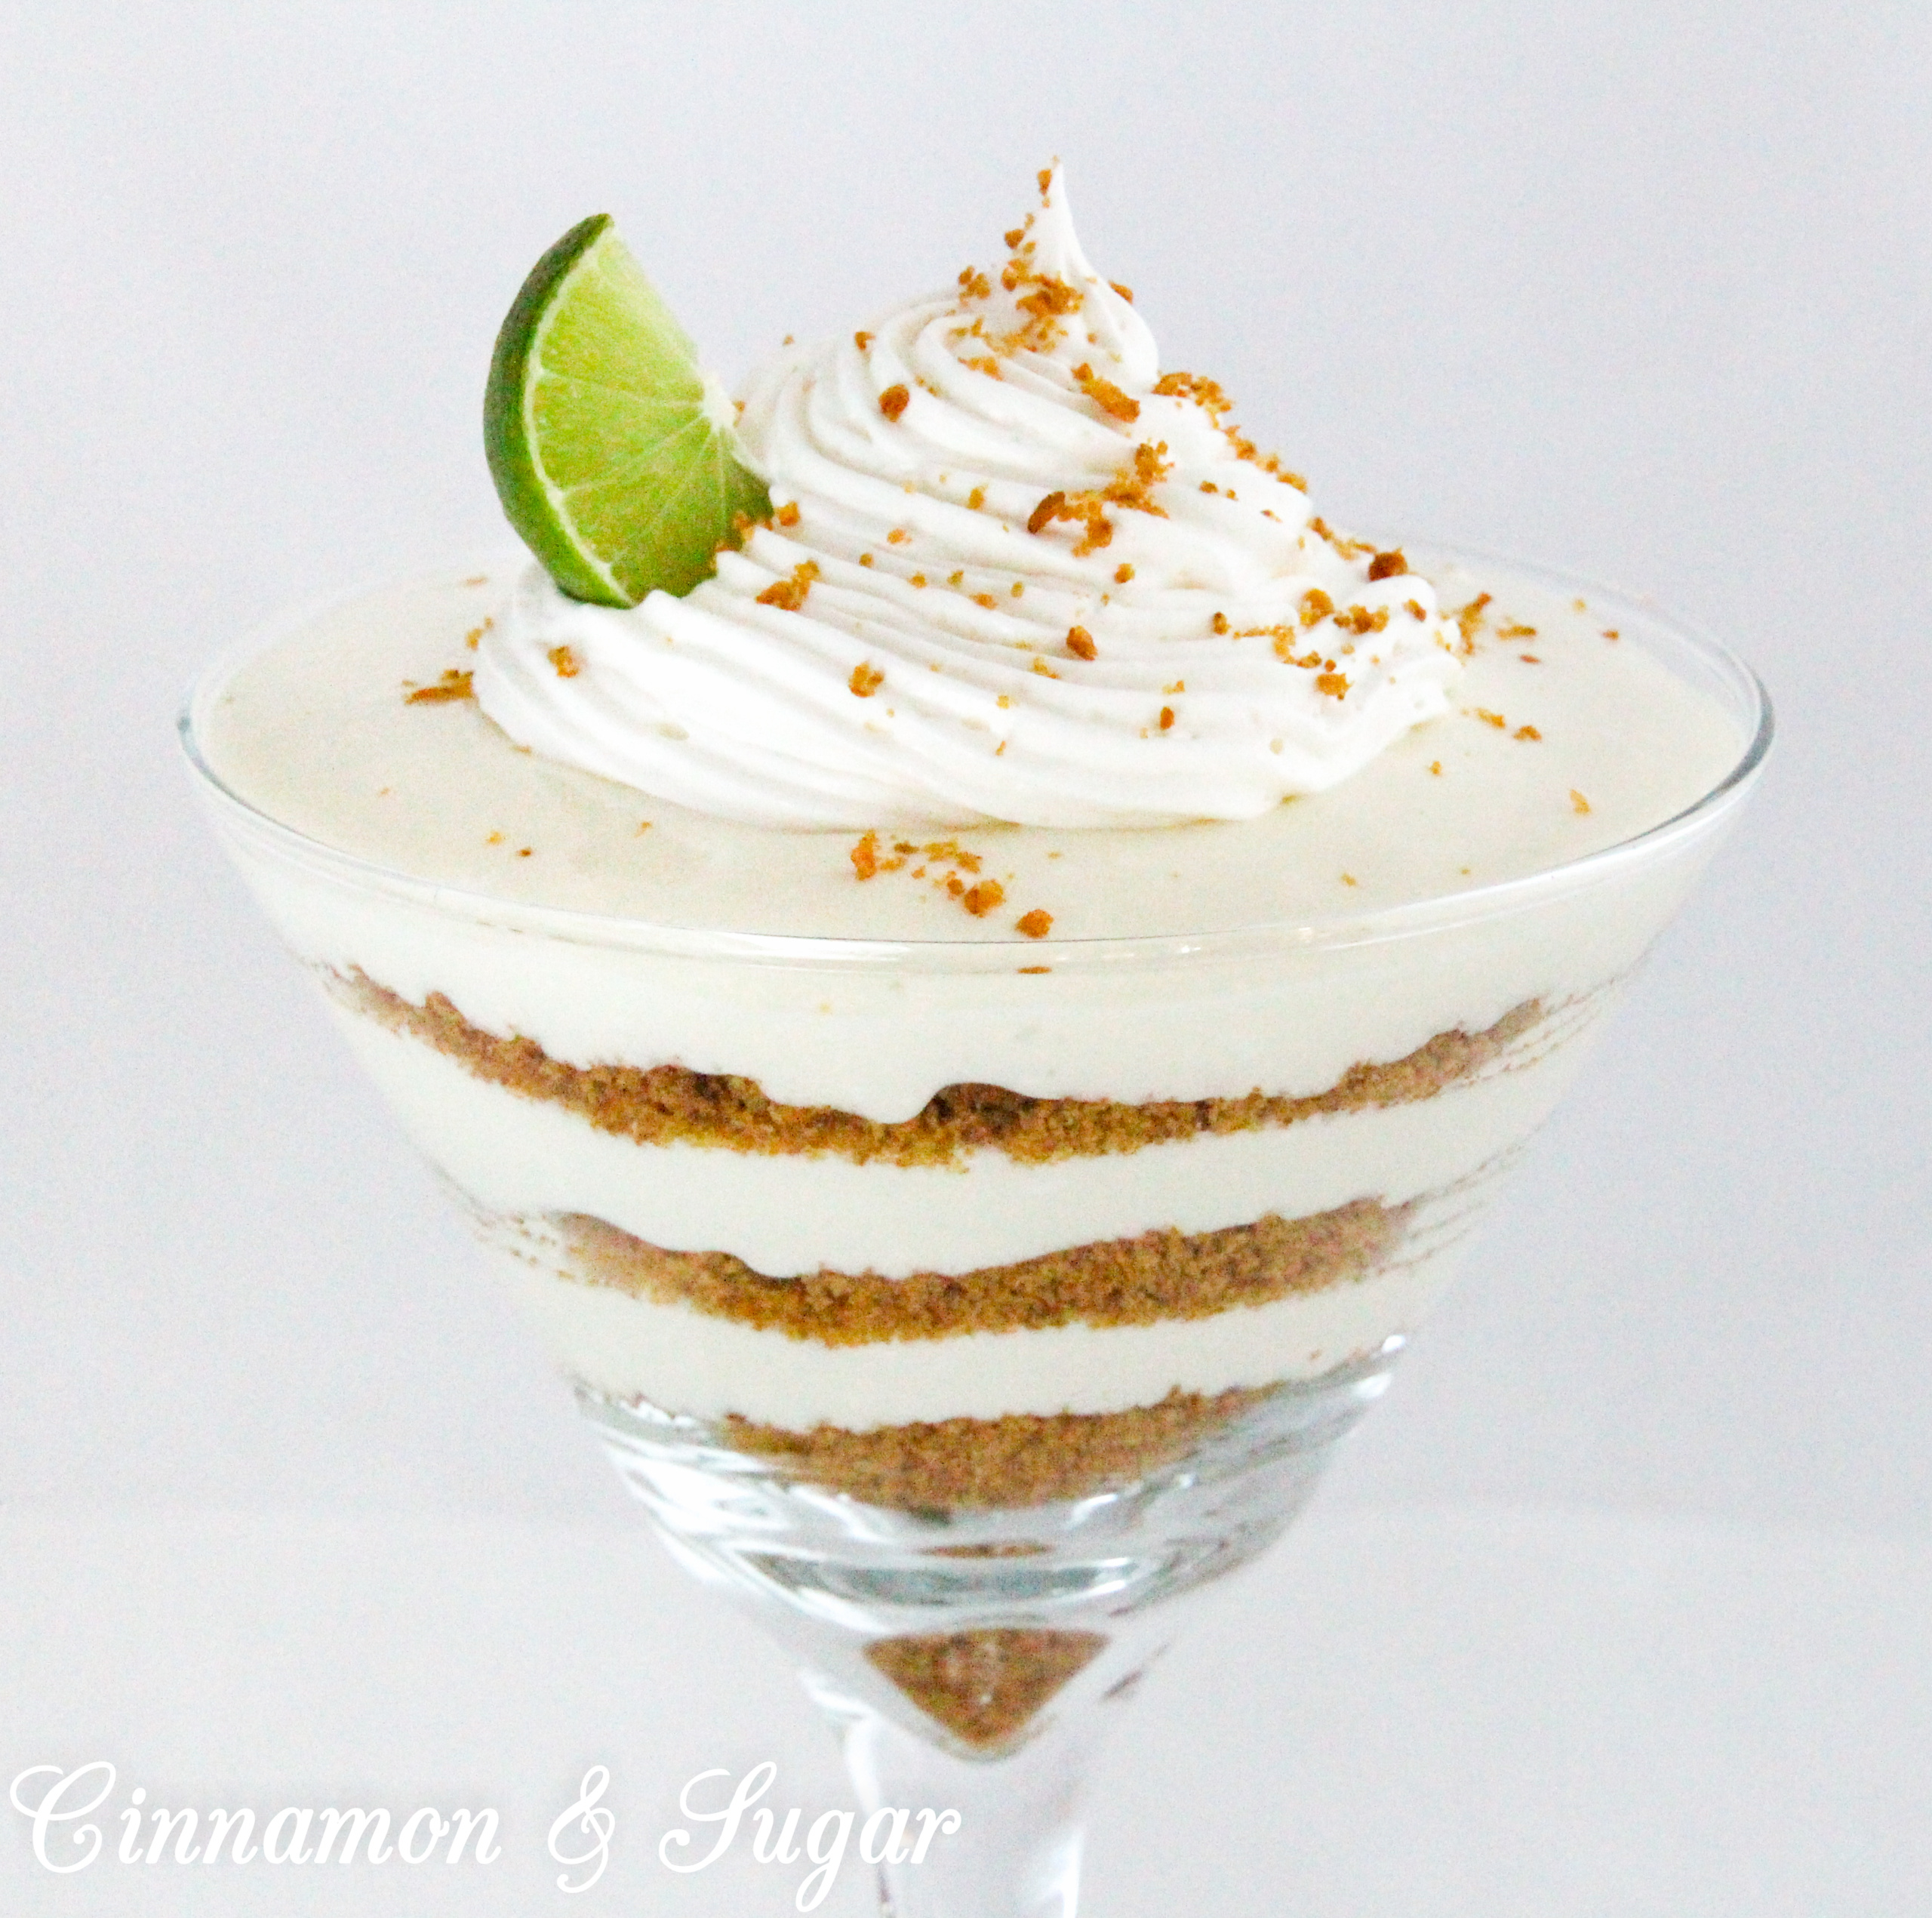 Key Lime Parfait combines tart citrus key limes with creamy whipped cream. Layered with crunchy, sweet graham cracker crumbs this dessert makes for an elegant presentation. Recipe shared with permission granted by Lucy Burdette, author of THE KEY LIME CRIME.